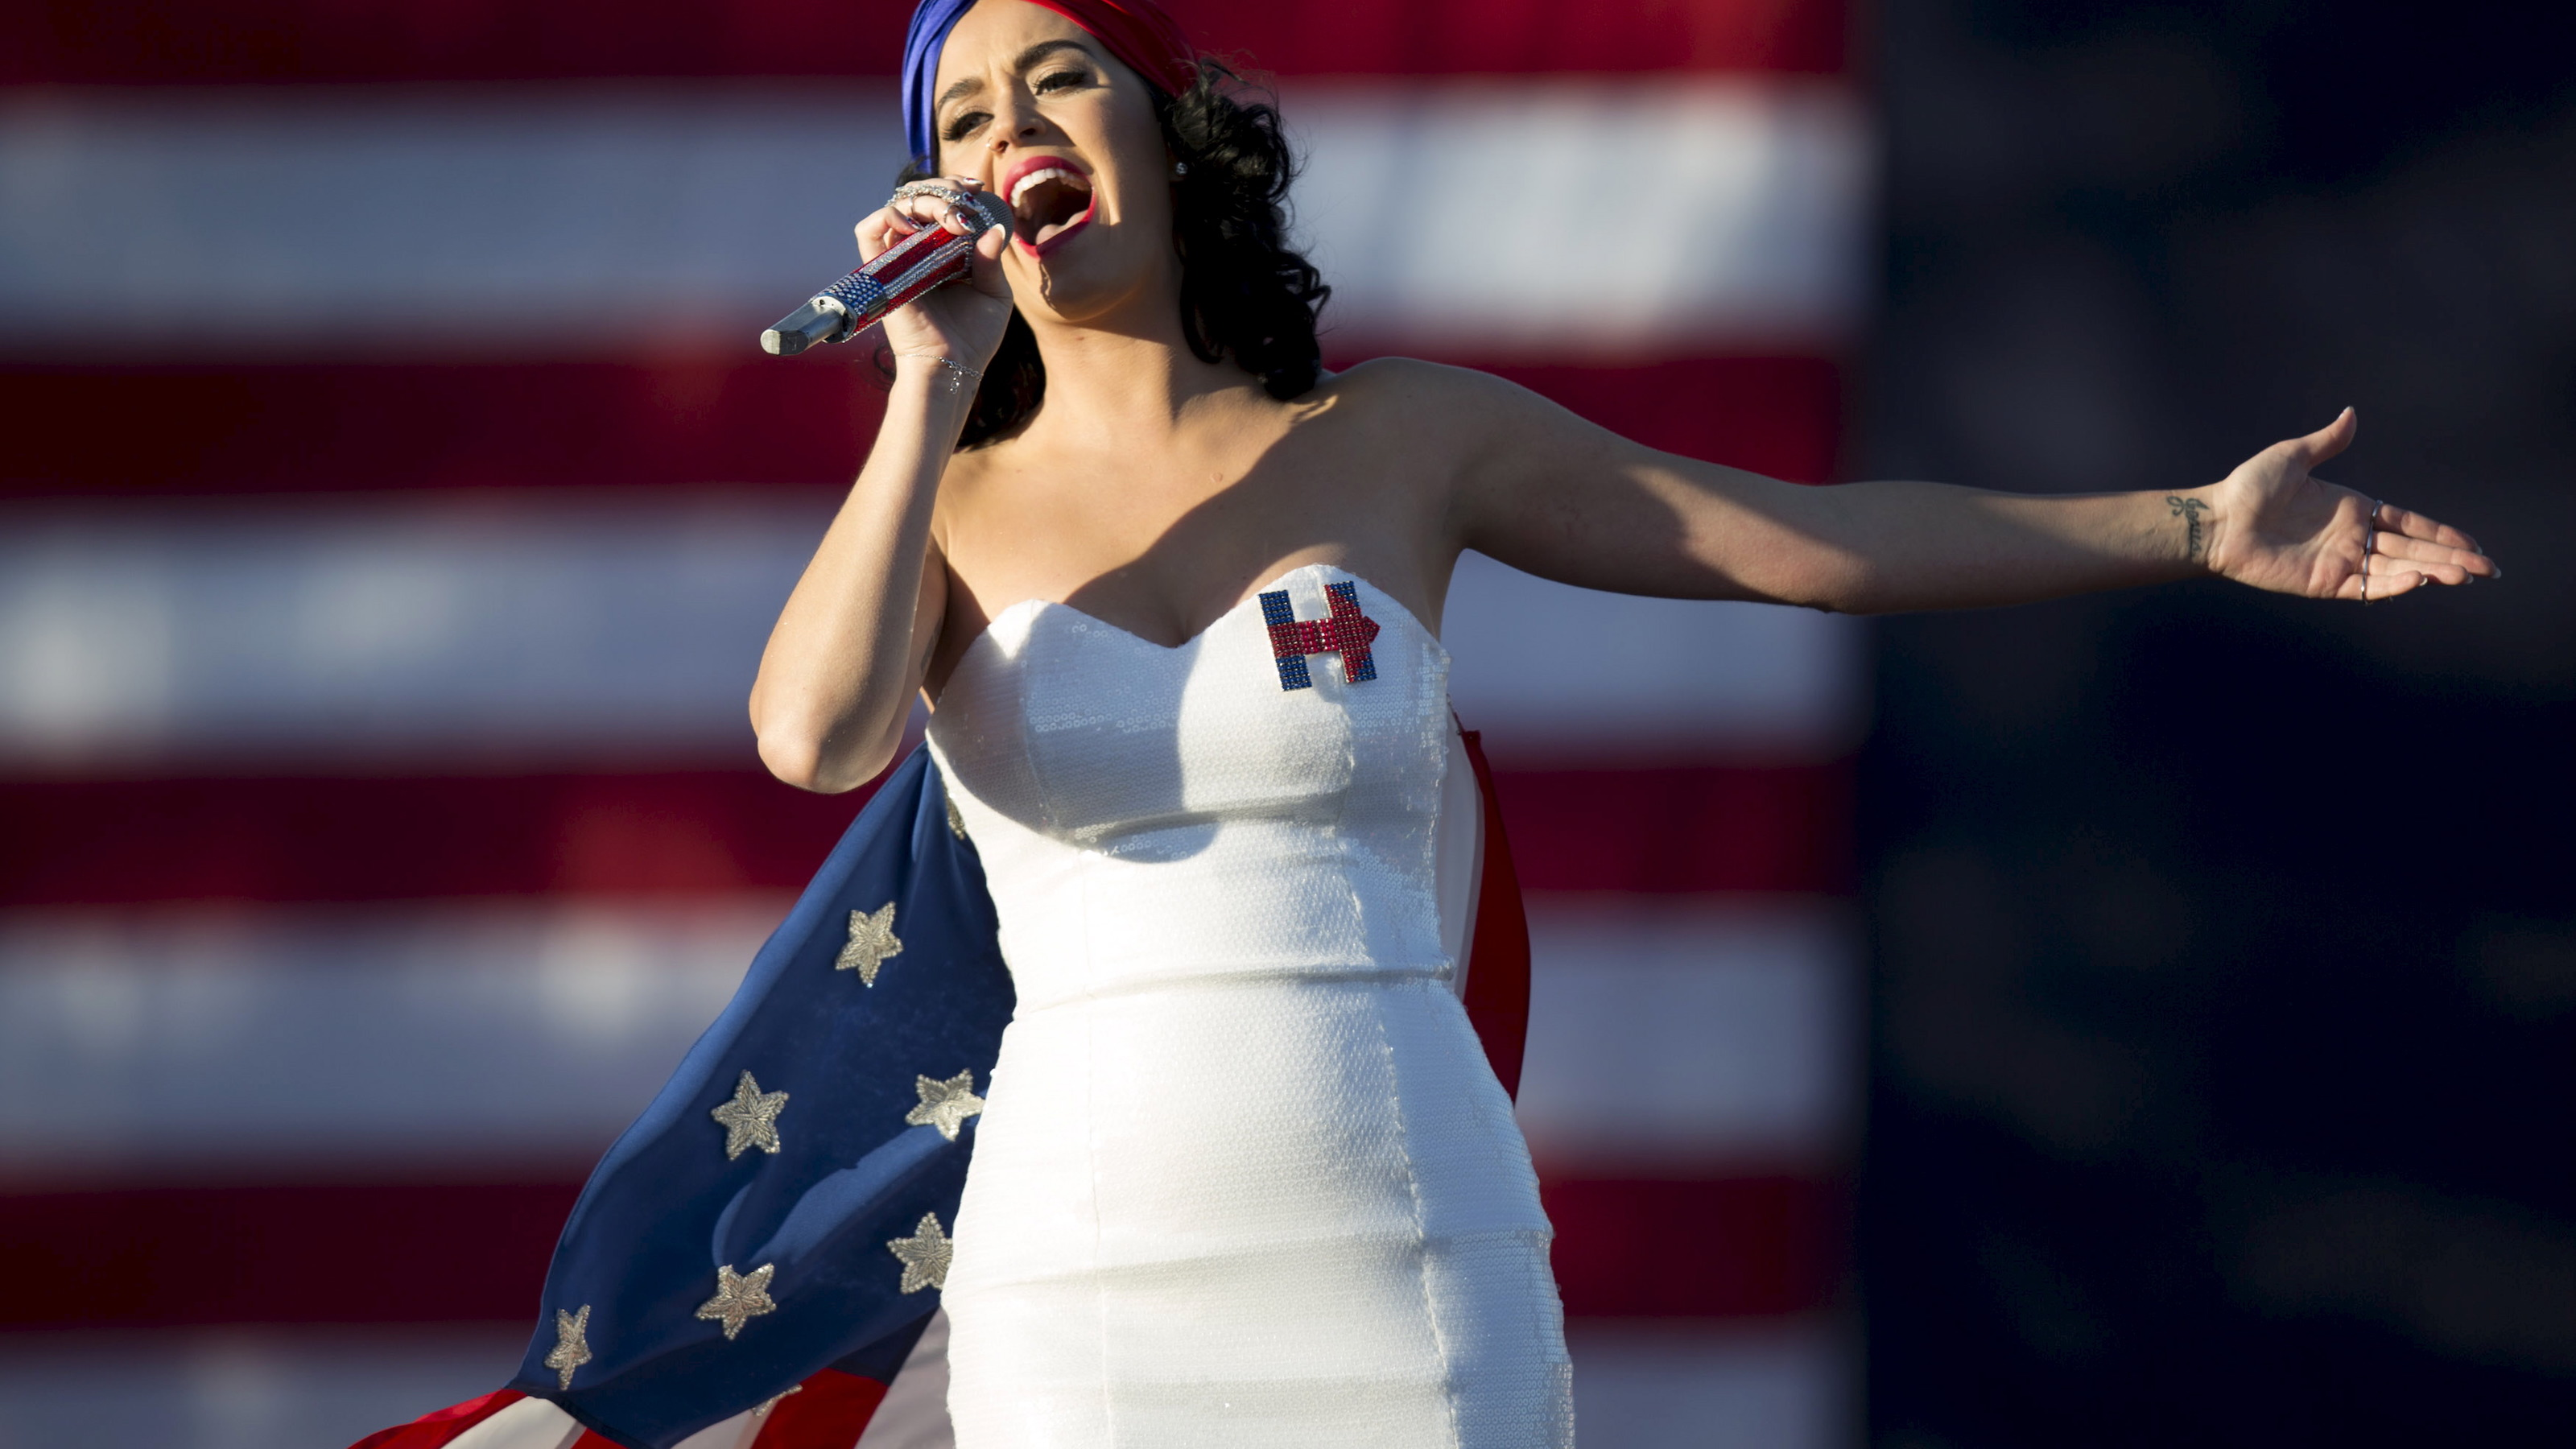 Entertainer Katy Perry sings during a campaign rally for Democratic presidential candidate Hillary Clinton with her husband Bill Clinton in Des Moines, Iowa, October 24, 2015. REUTERS/Scott Morgan - RTX1T2KC